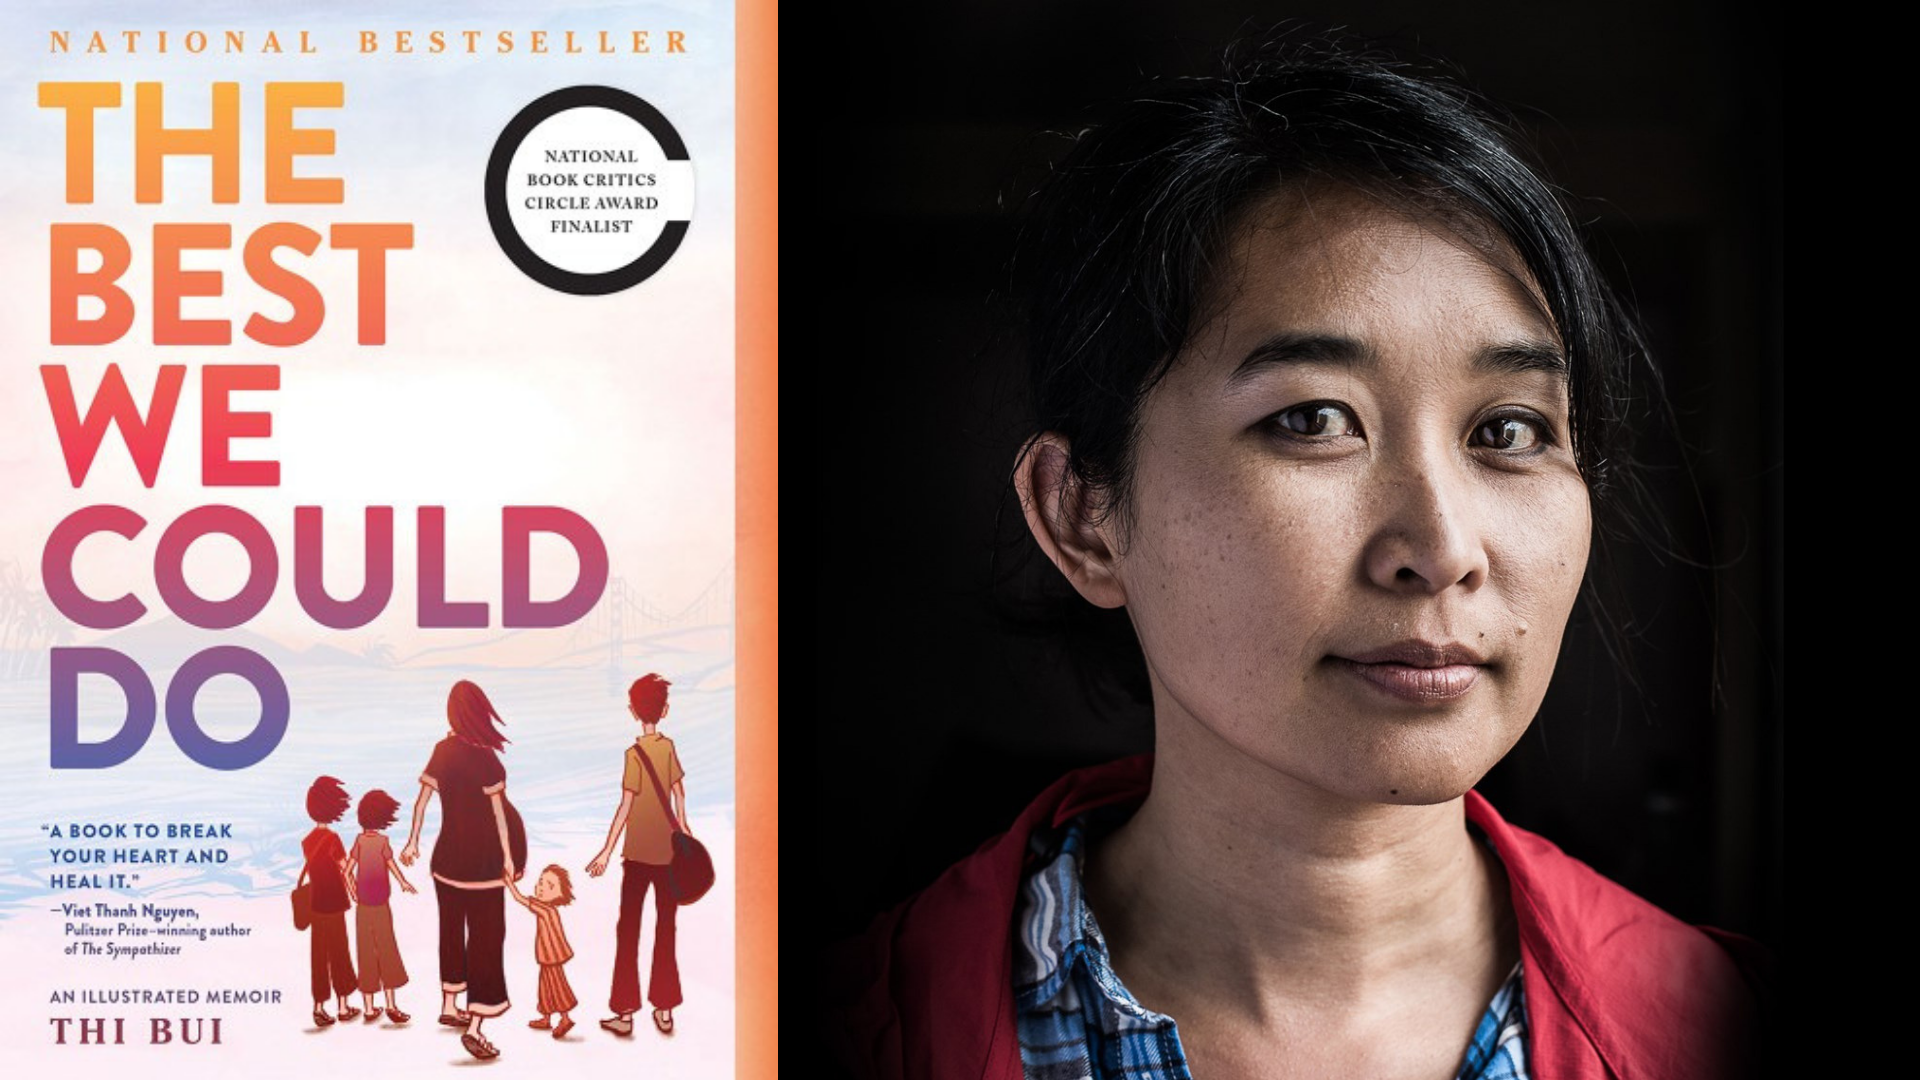 Graphic with book cover of The Best We Could Do by Thi Bui and photo of the the author Thi Bui